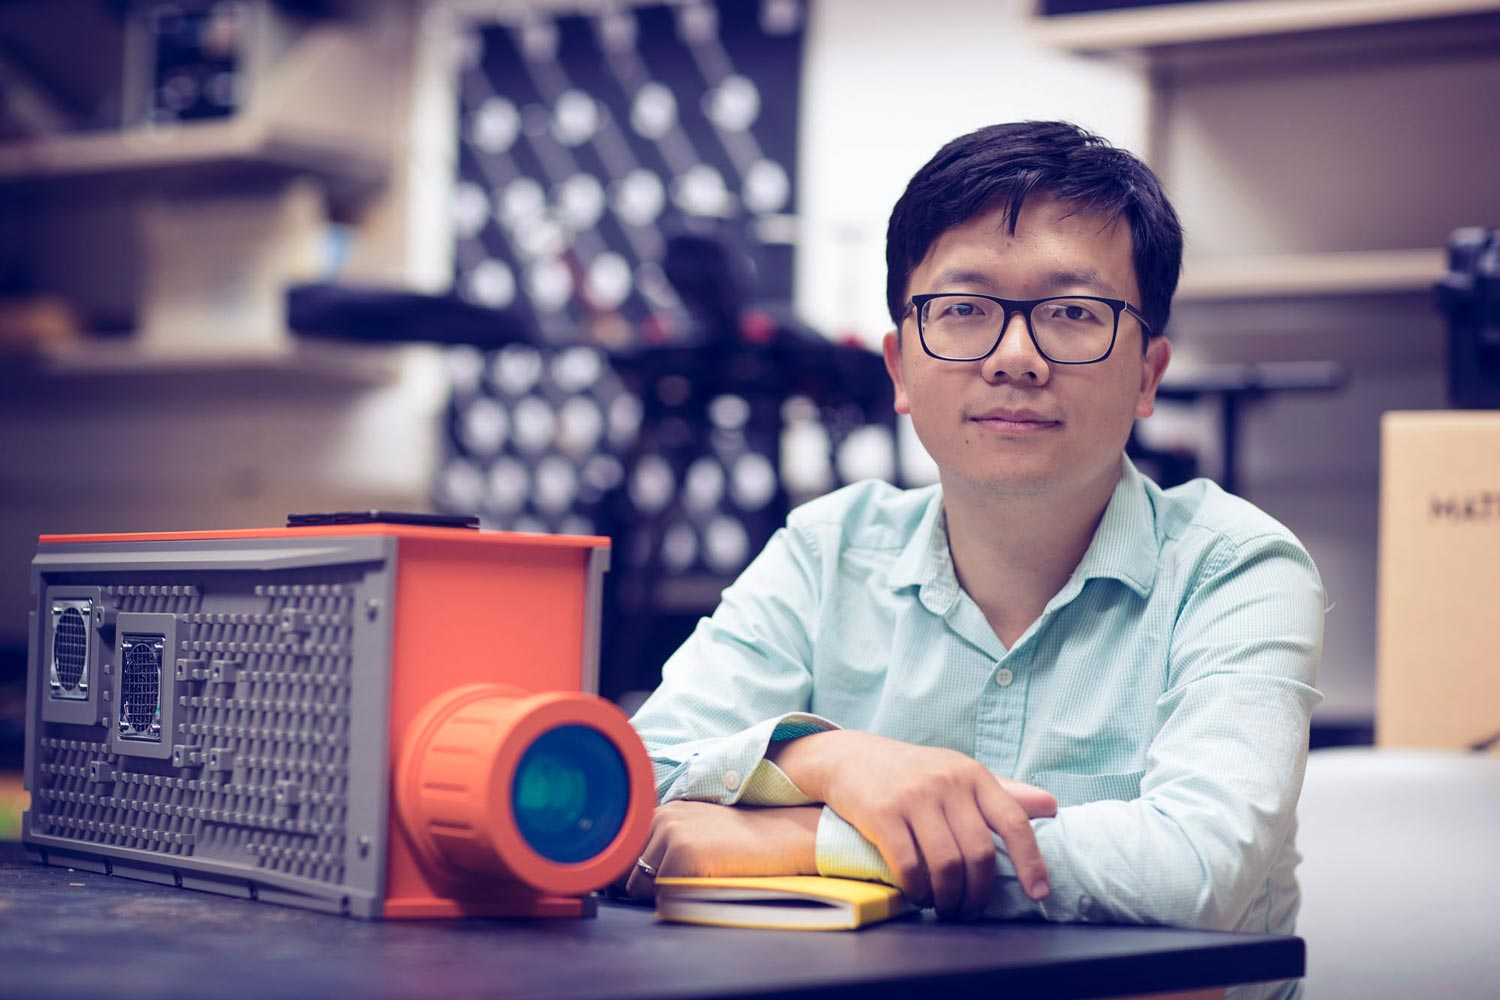 Xi Yang joined the environmental sciences faculty last year, specializing in vegetation/climate interactions. (Photo by Dan Addison, University Communications)